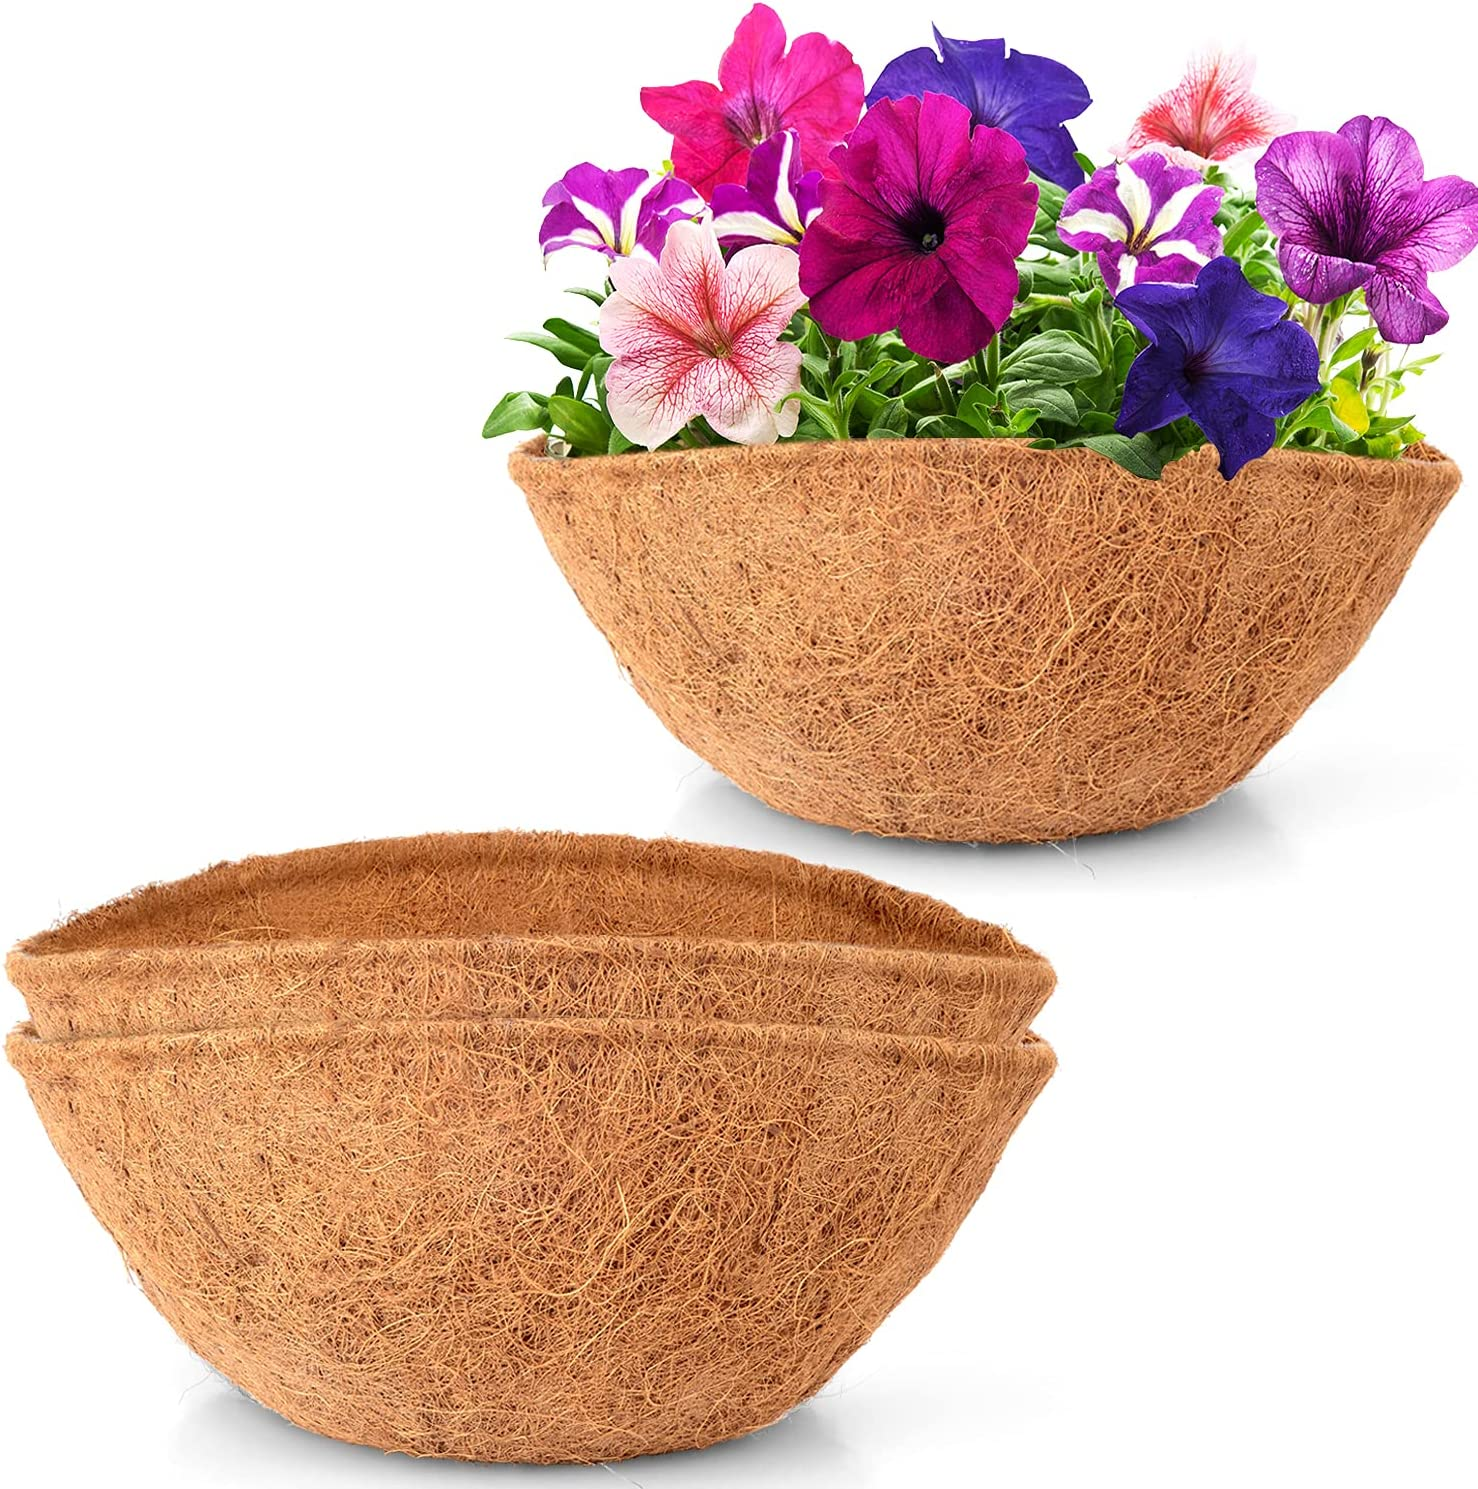 LAVEVE Coco Coir Liner Replacement specialty shop for Plant Basket Hanging 2 Free shipping on posting reviews P